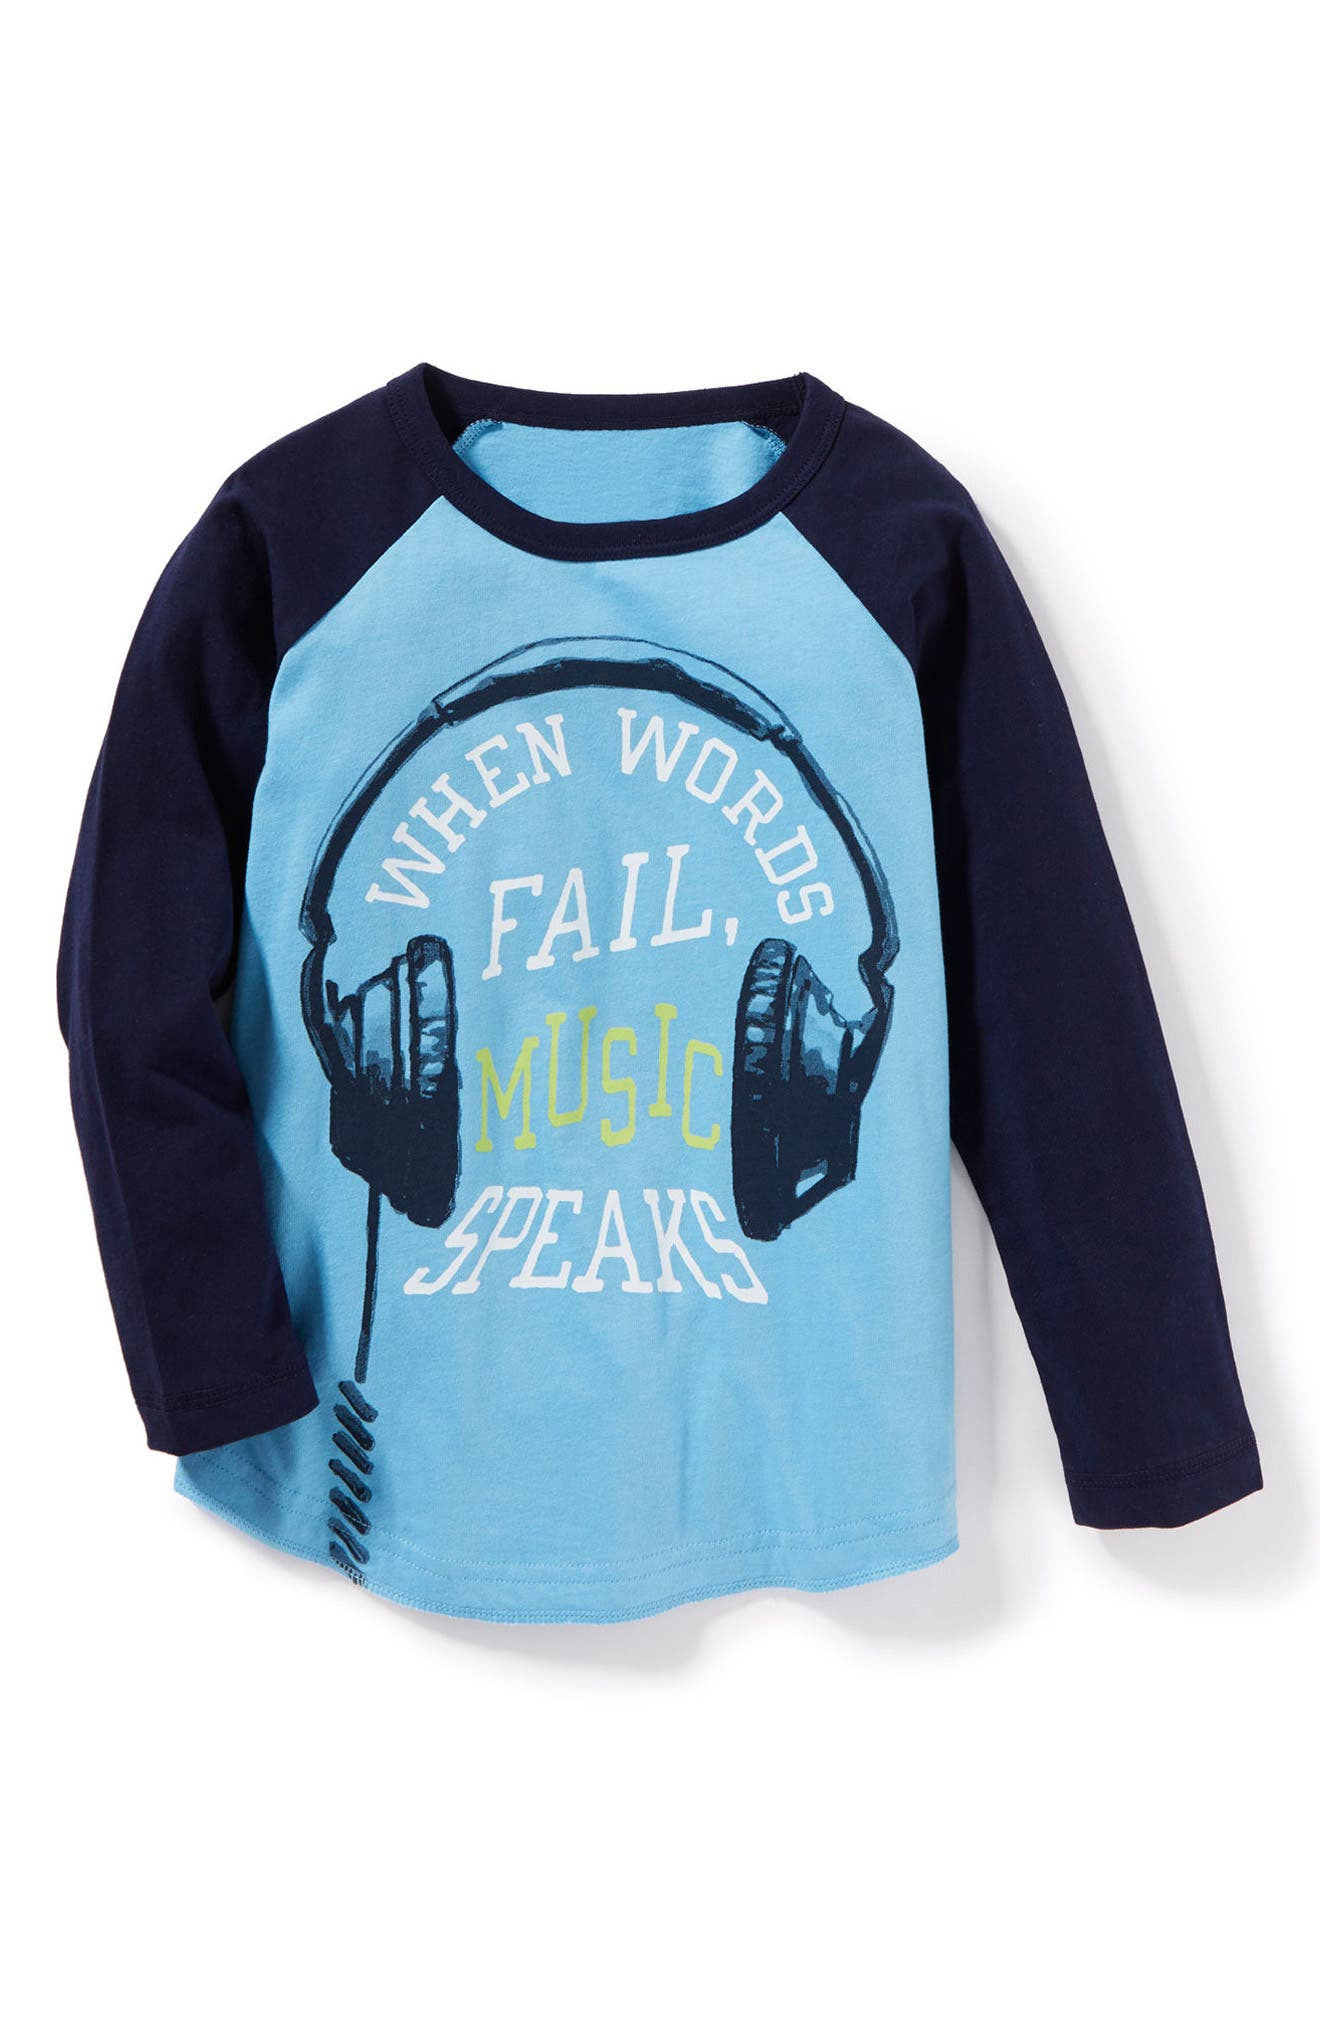 Peek Music Speaks Graphic Long Sleeve T-Shirt (Toddler Boys, Little Boys & Big Boys)